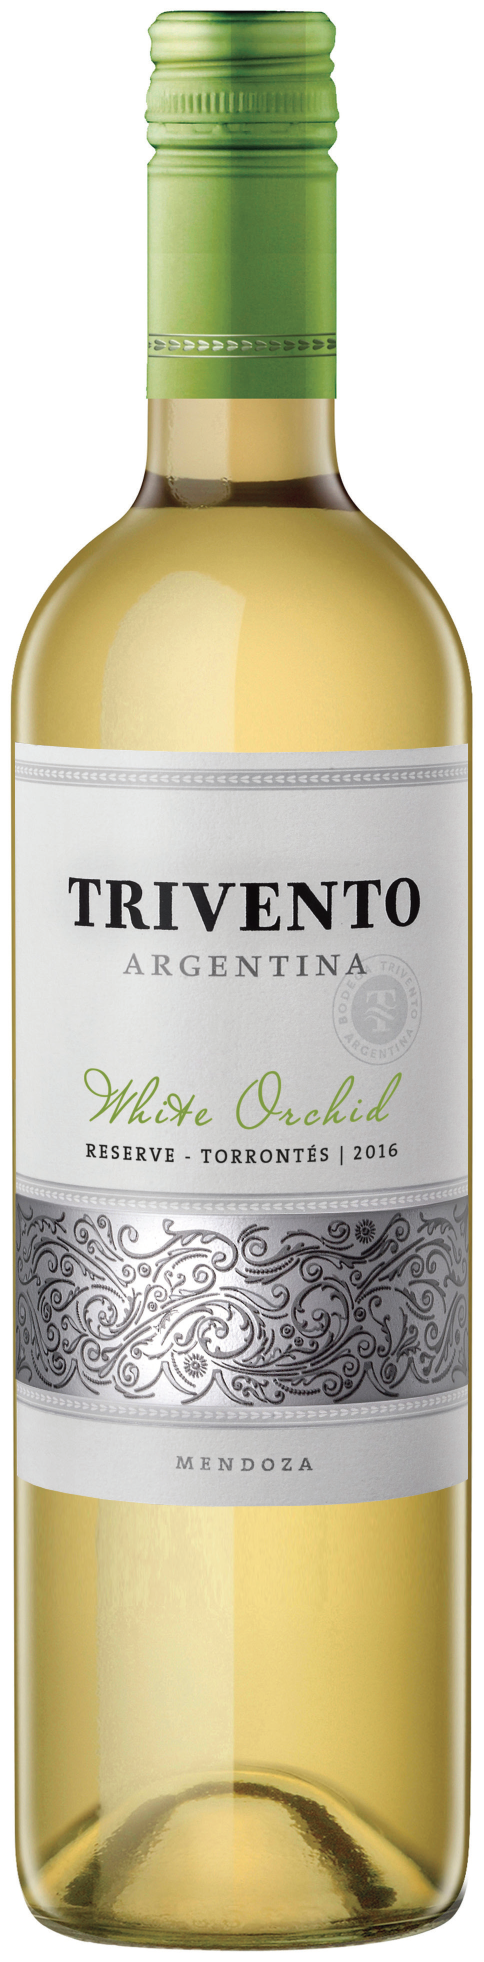 Trivento Expands Distribution of 'White Orchid' Torrontes Blend